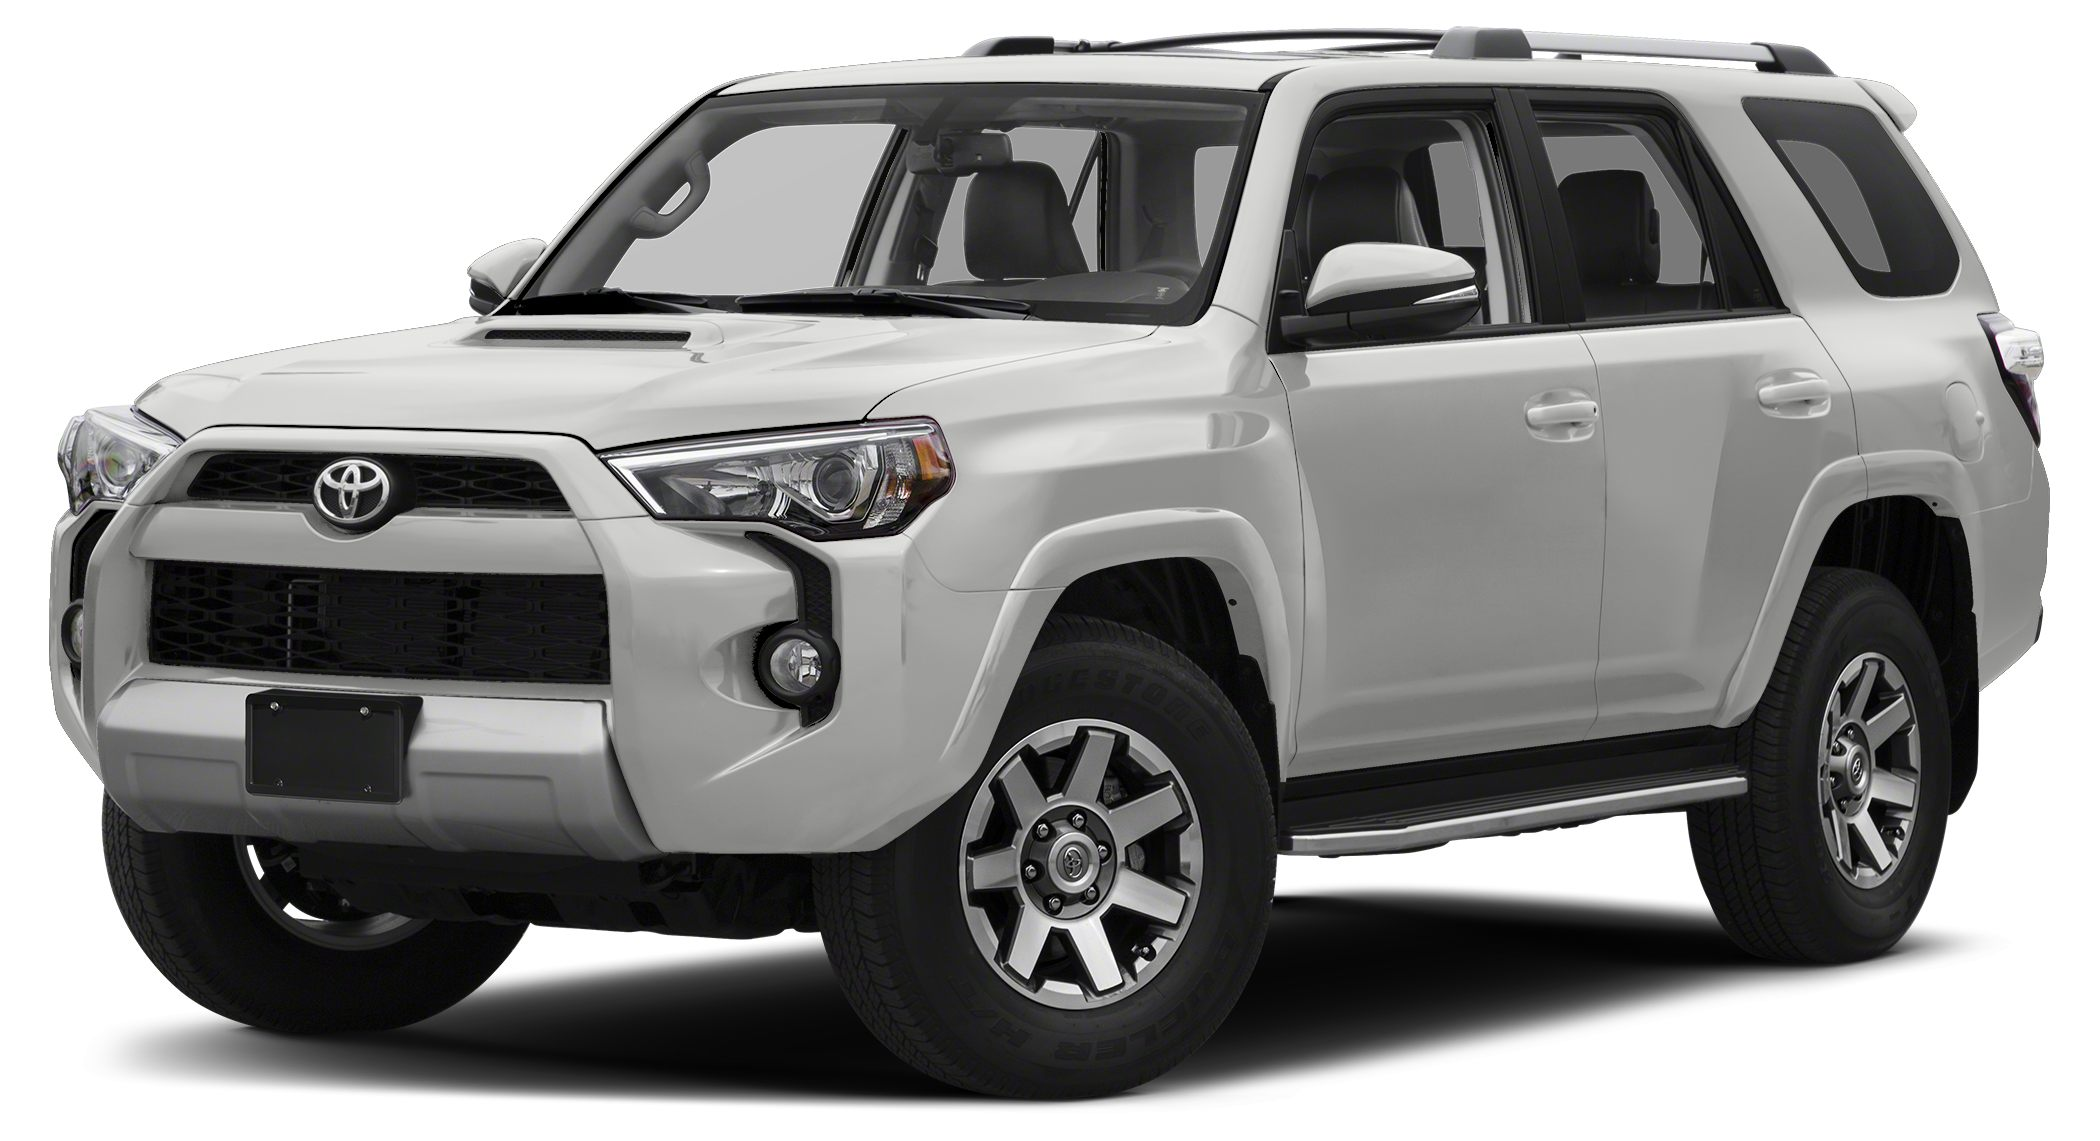 2016 Toyota 4Runner Trail Premium Westboro Toyota is proud to present HASSLE FREE BUYING EXPERIENC